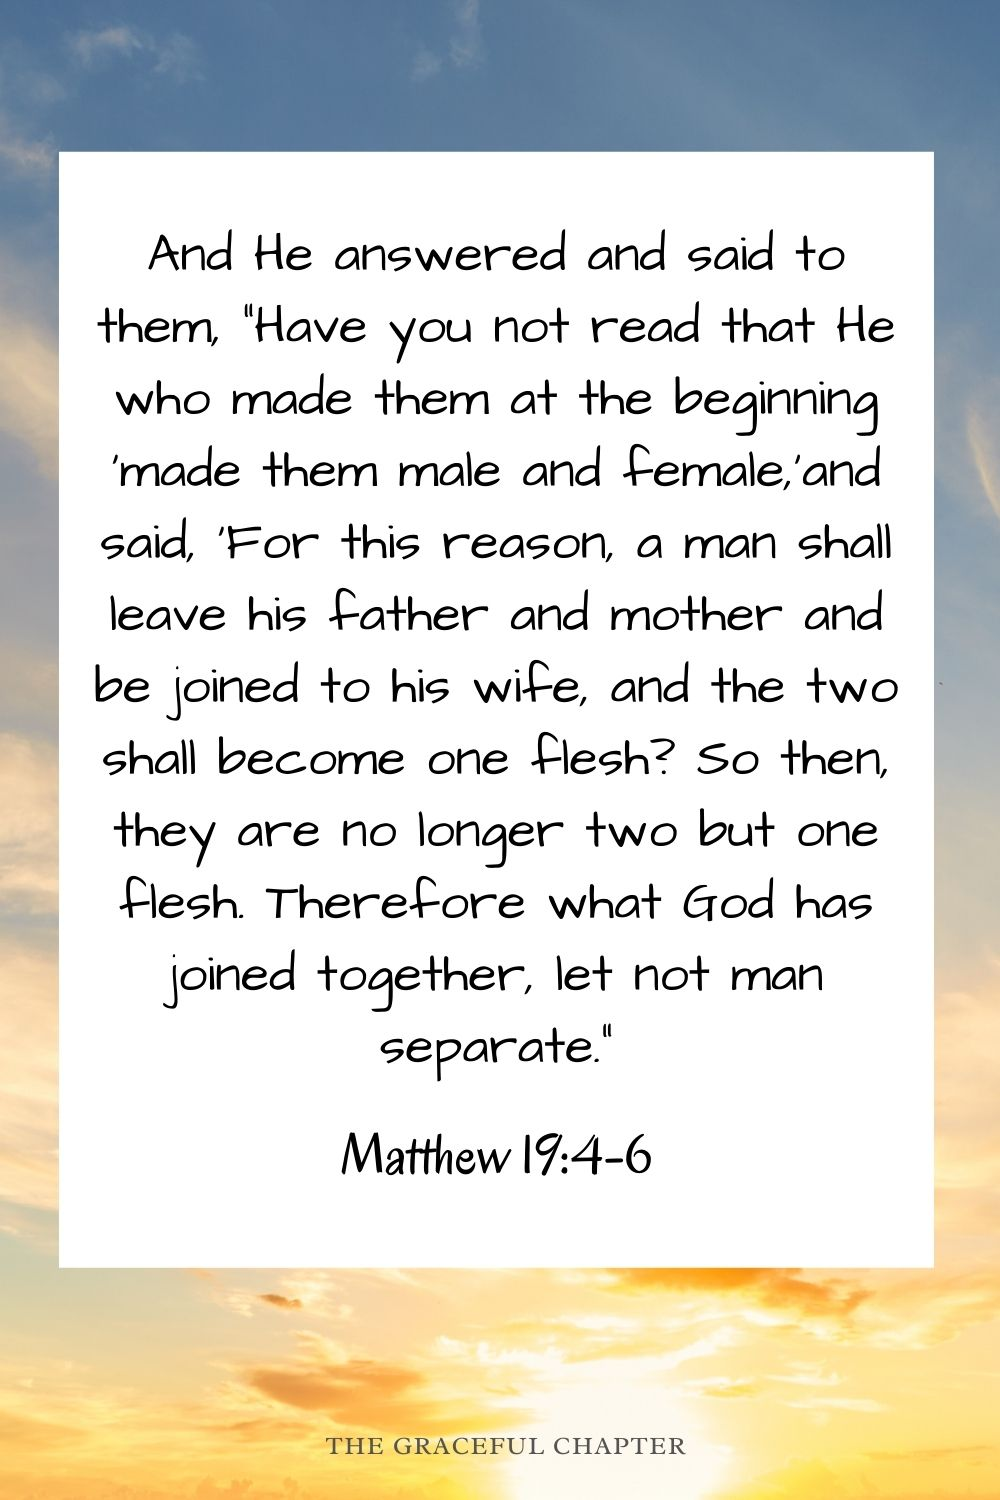 """And He answered and said to them, """"Have you not read that He who made them at the beginning 'made them male and female,'and said, 'For this reason, a man shall leave his father and mother and be joined to his wife, and the two shall become one flesh? So then, they are no longer two but one flesh. Therefore what God has joined together, let not man separate."""" Matthew 19:4-6"""